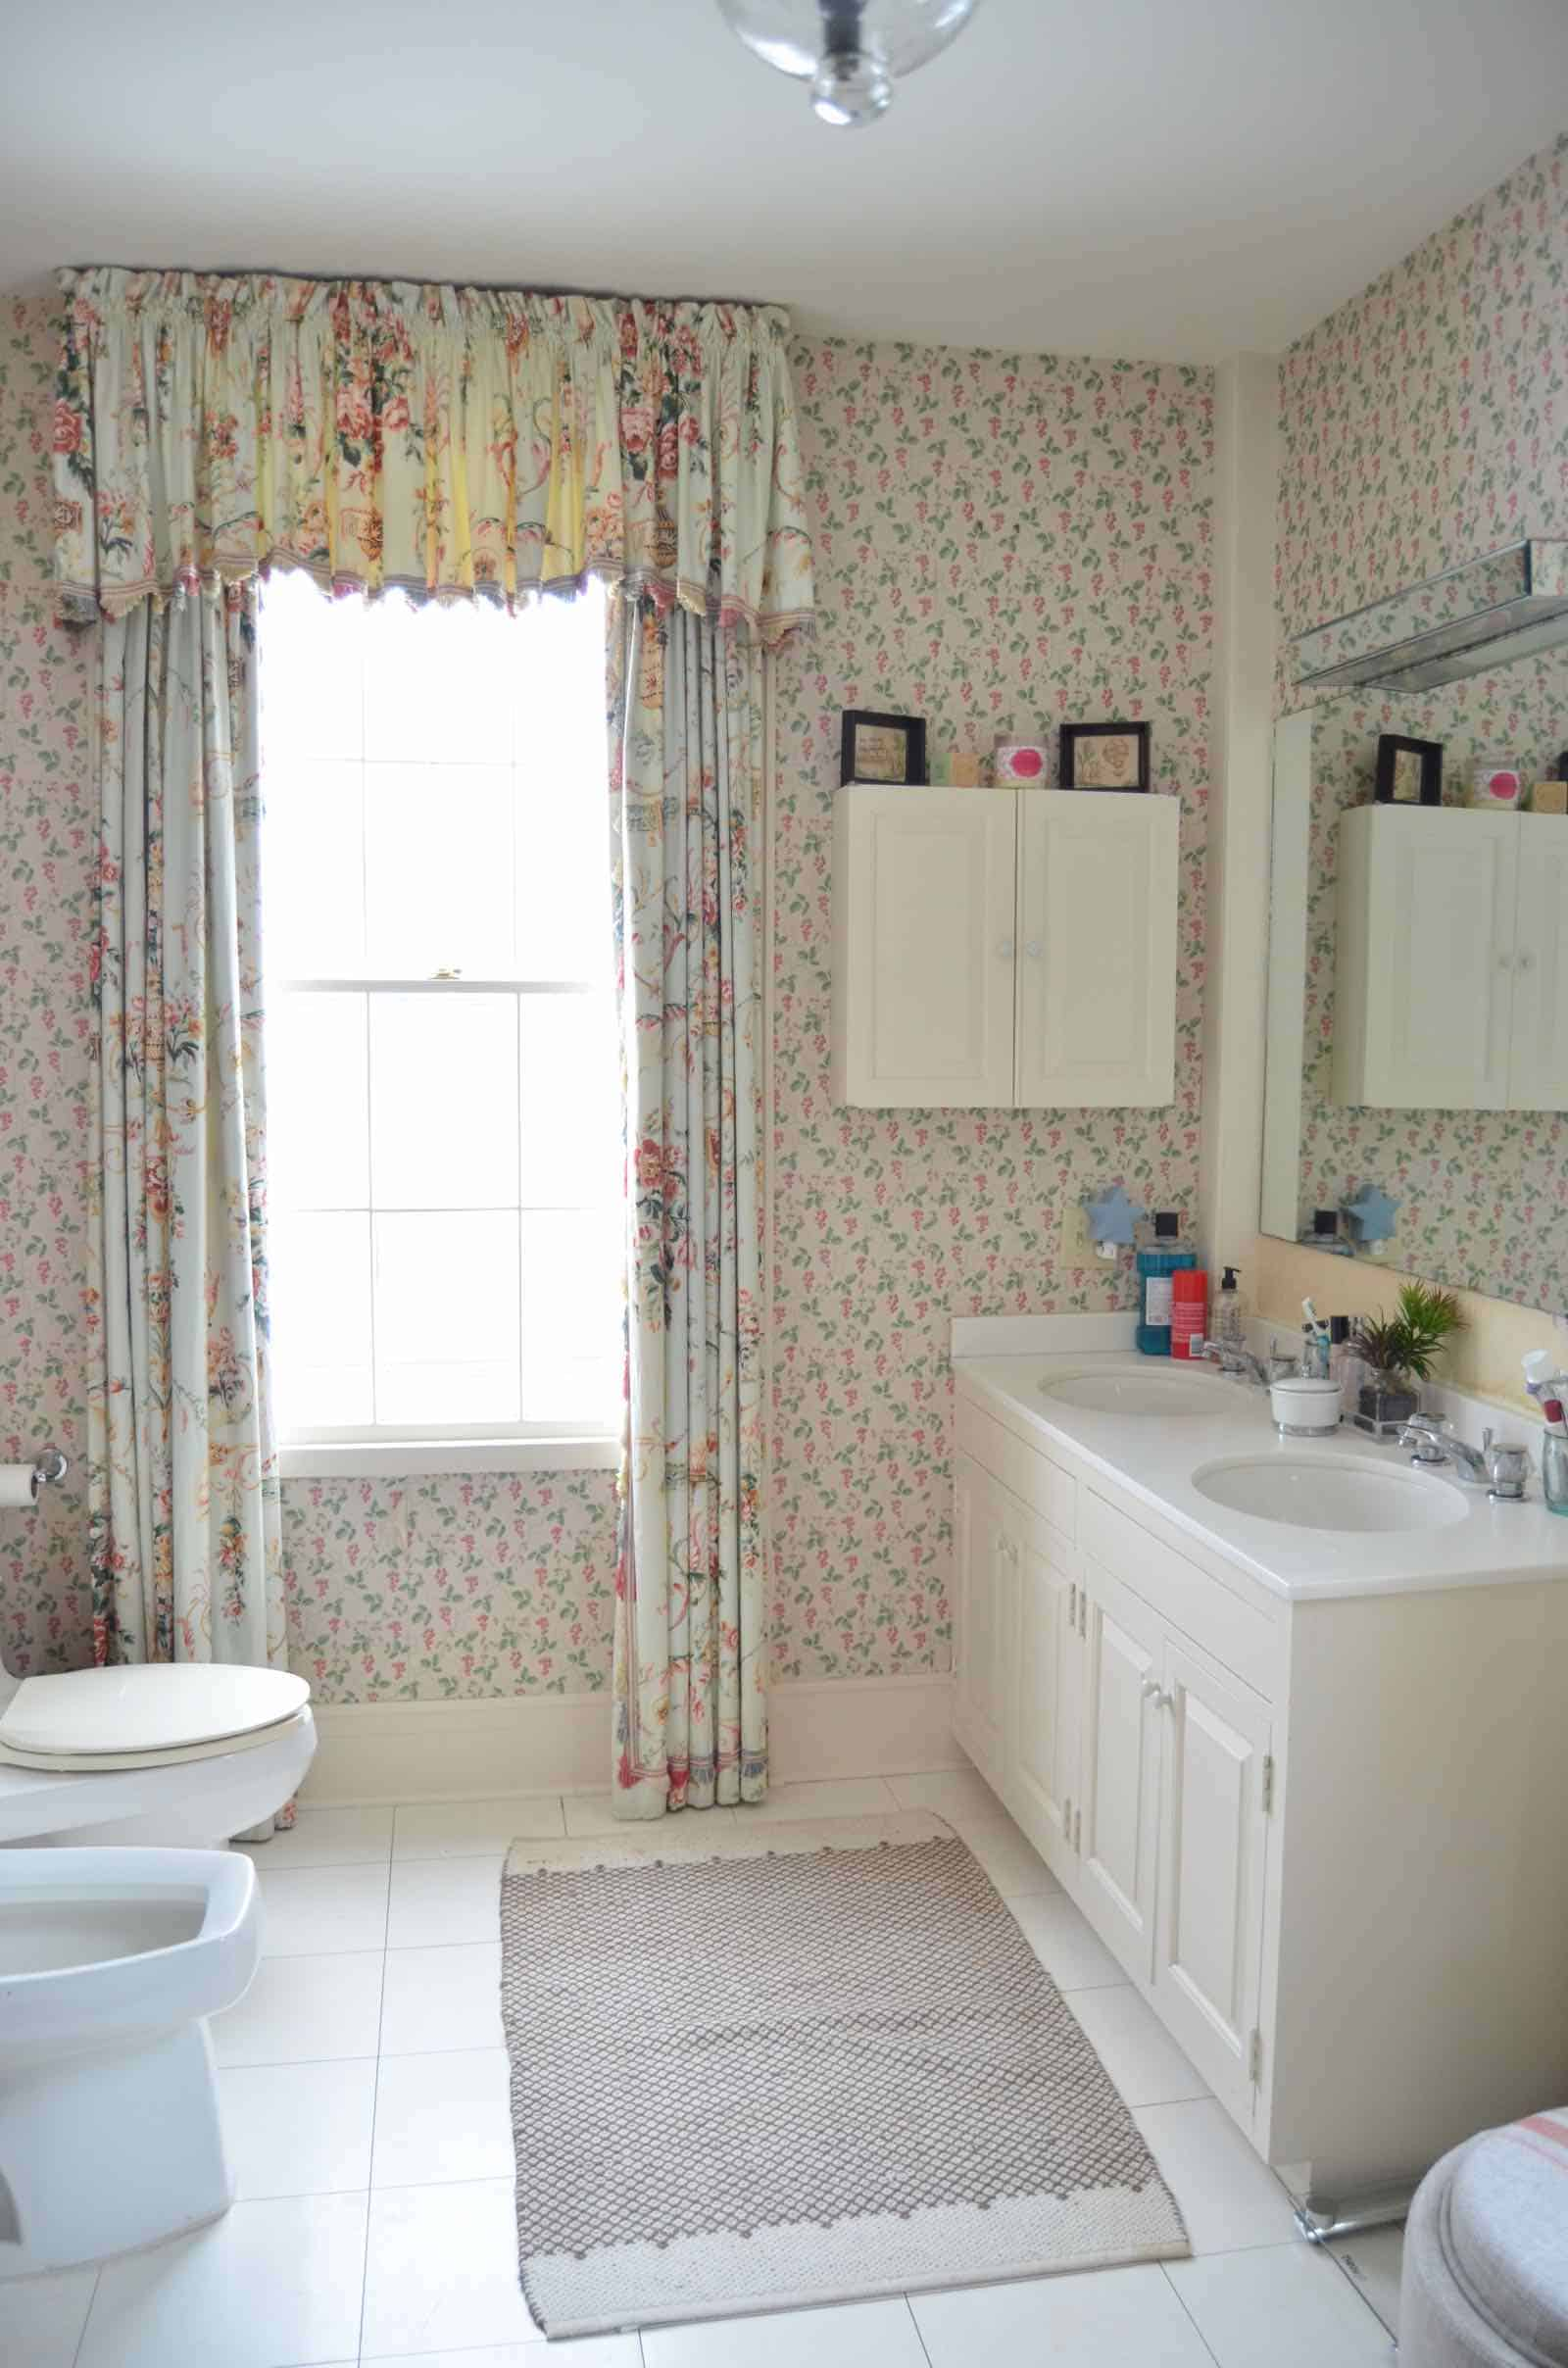 master bathroom vision board and plans!